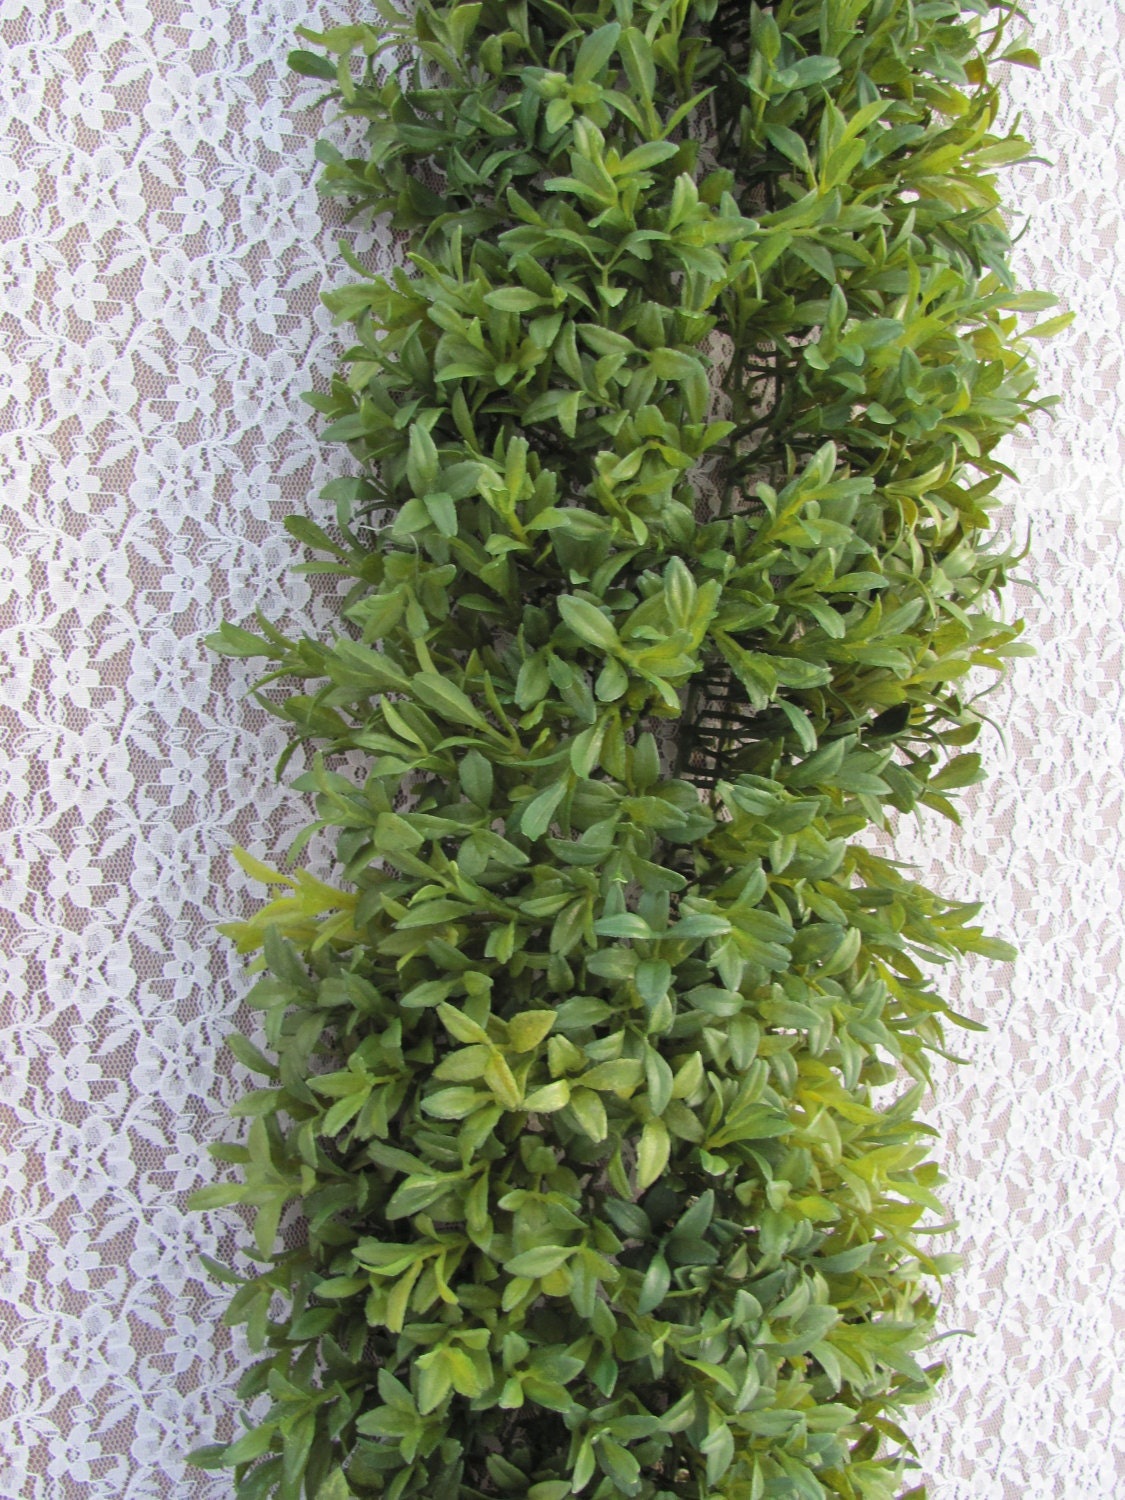 Tea Leaf Garlands Foilage is Ideal for Wedding Decor